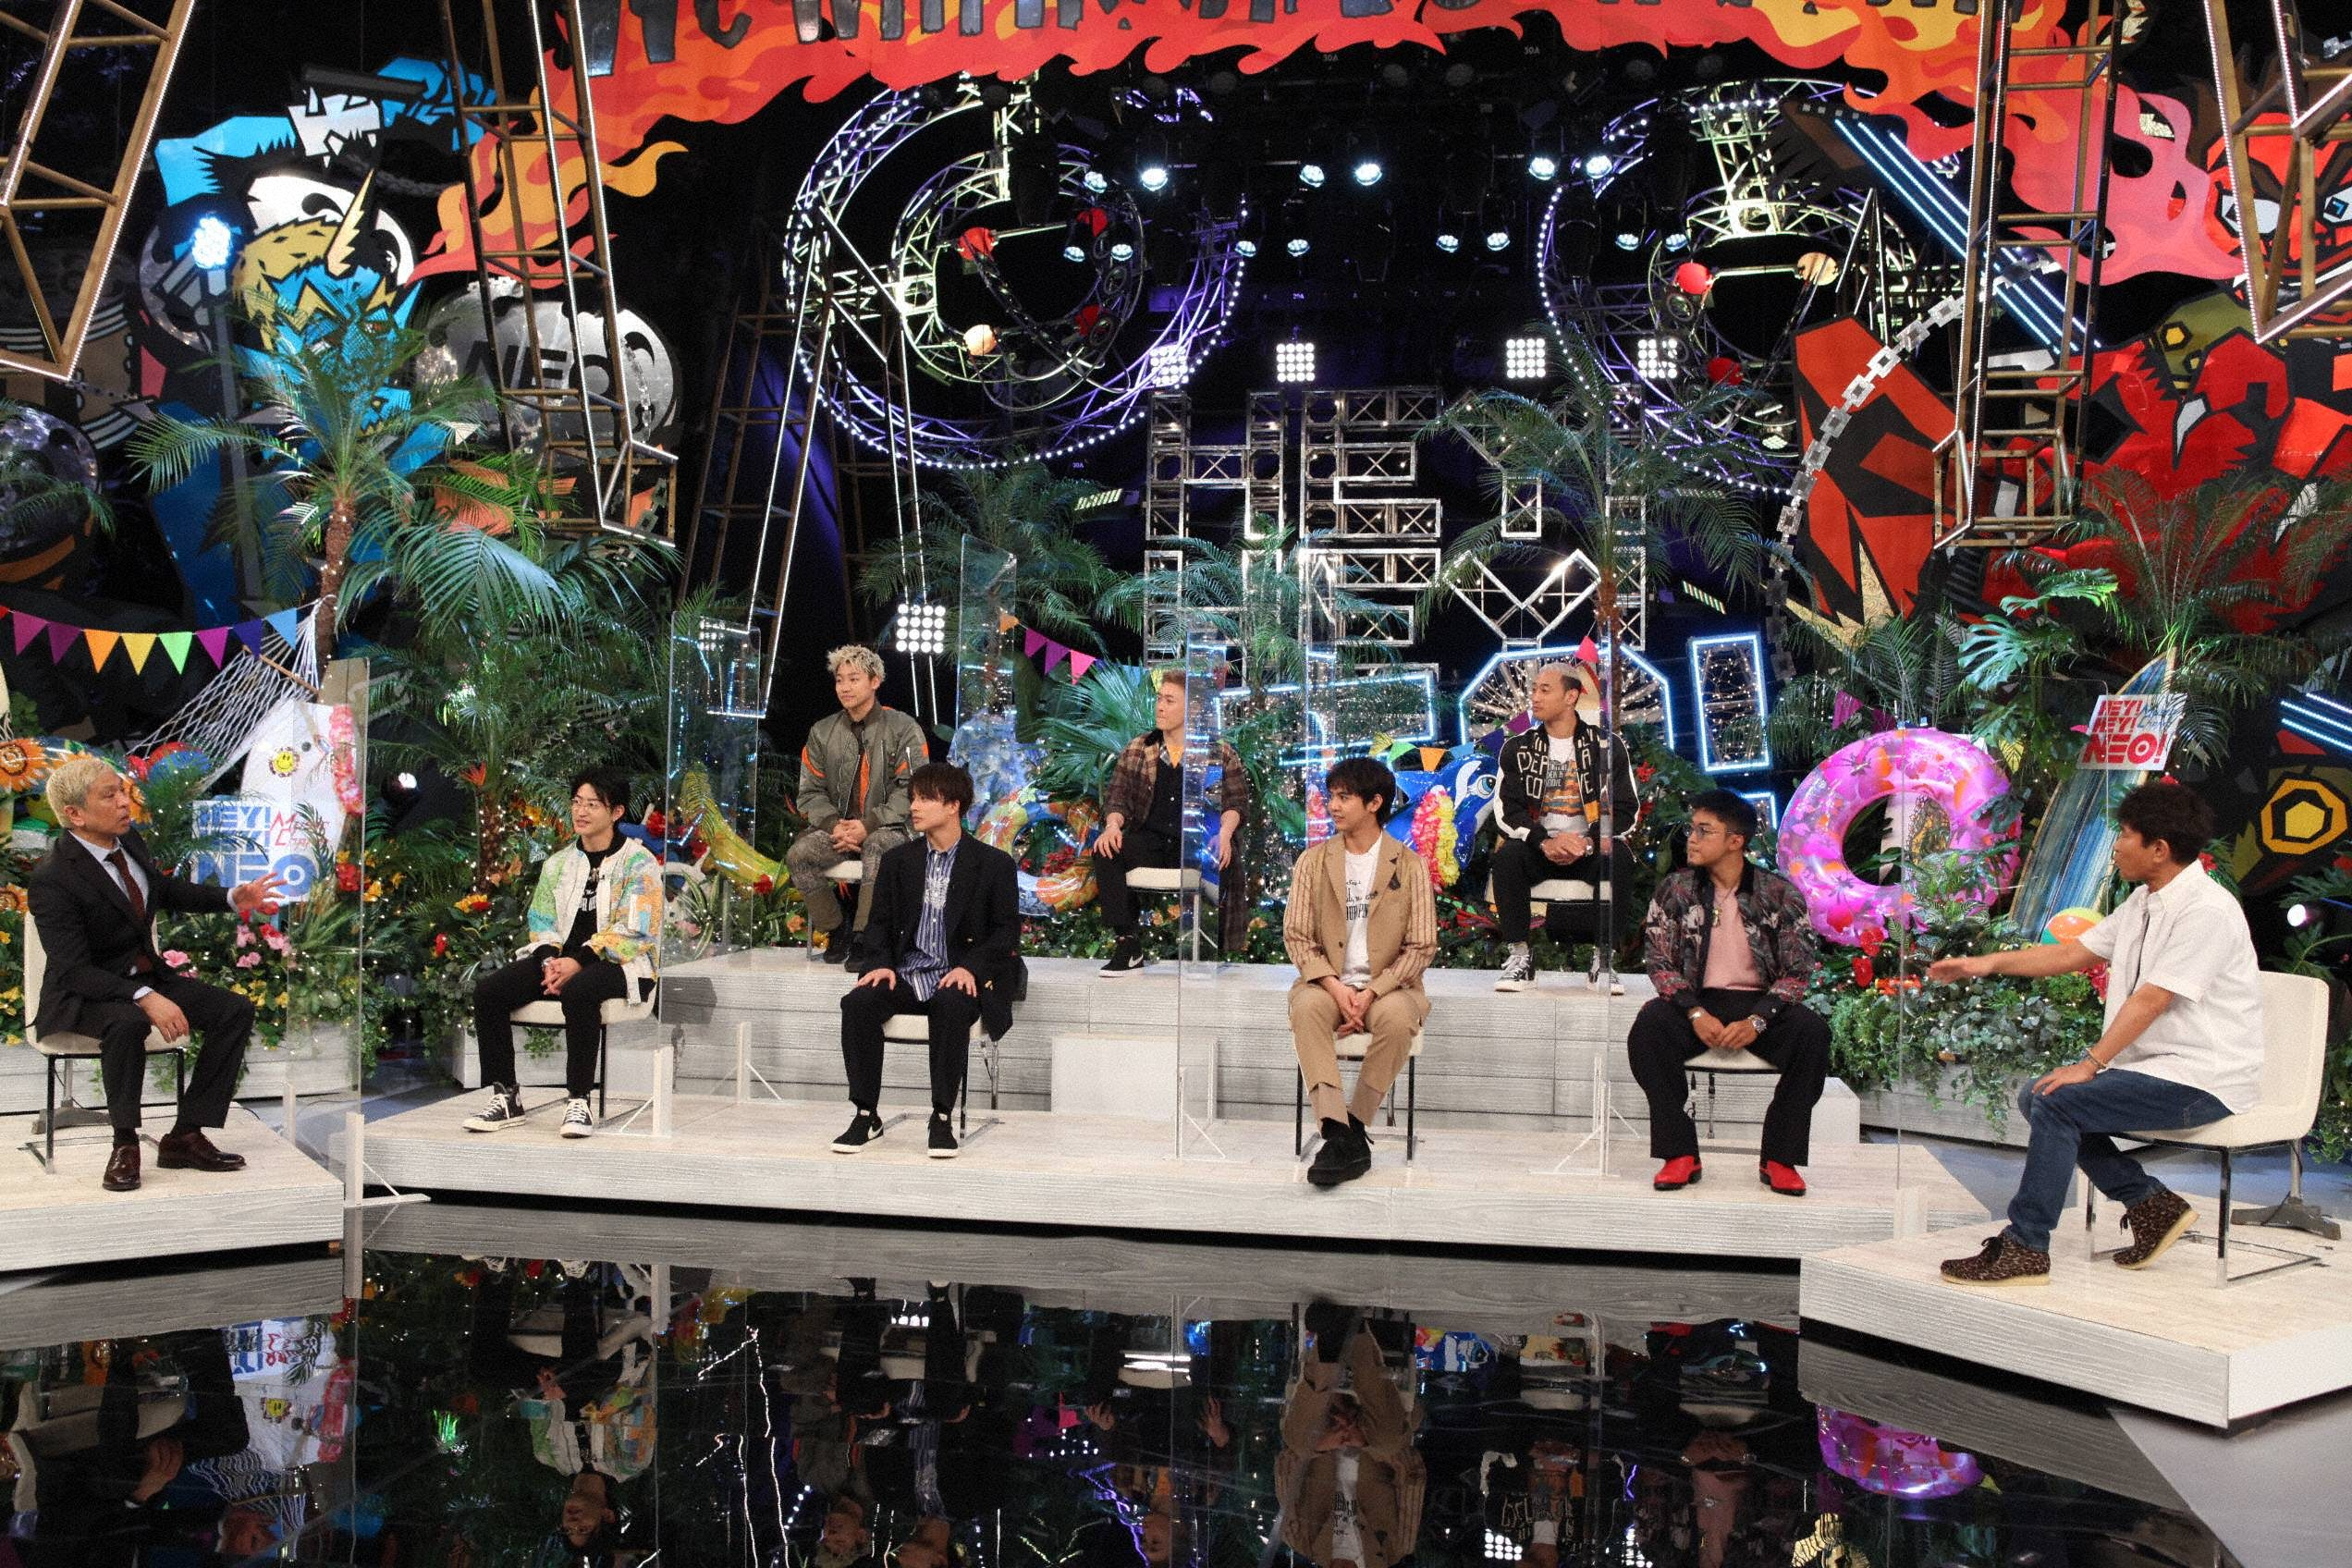 『HEY!HEY!NEO! MUSIC CHAMP』に出演のダウンタウンとGENERATIONS from EXILE TRIBE